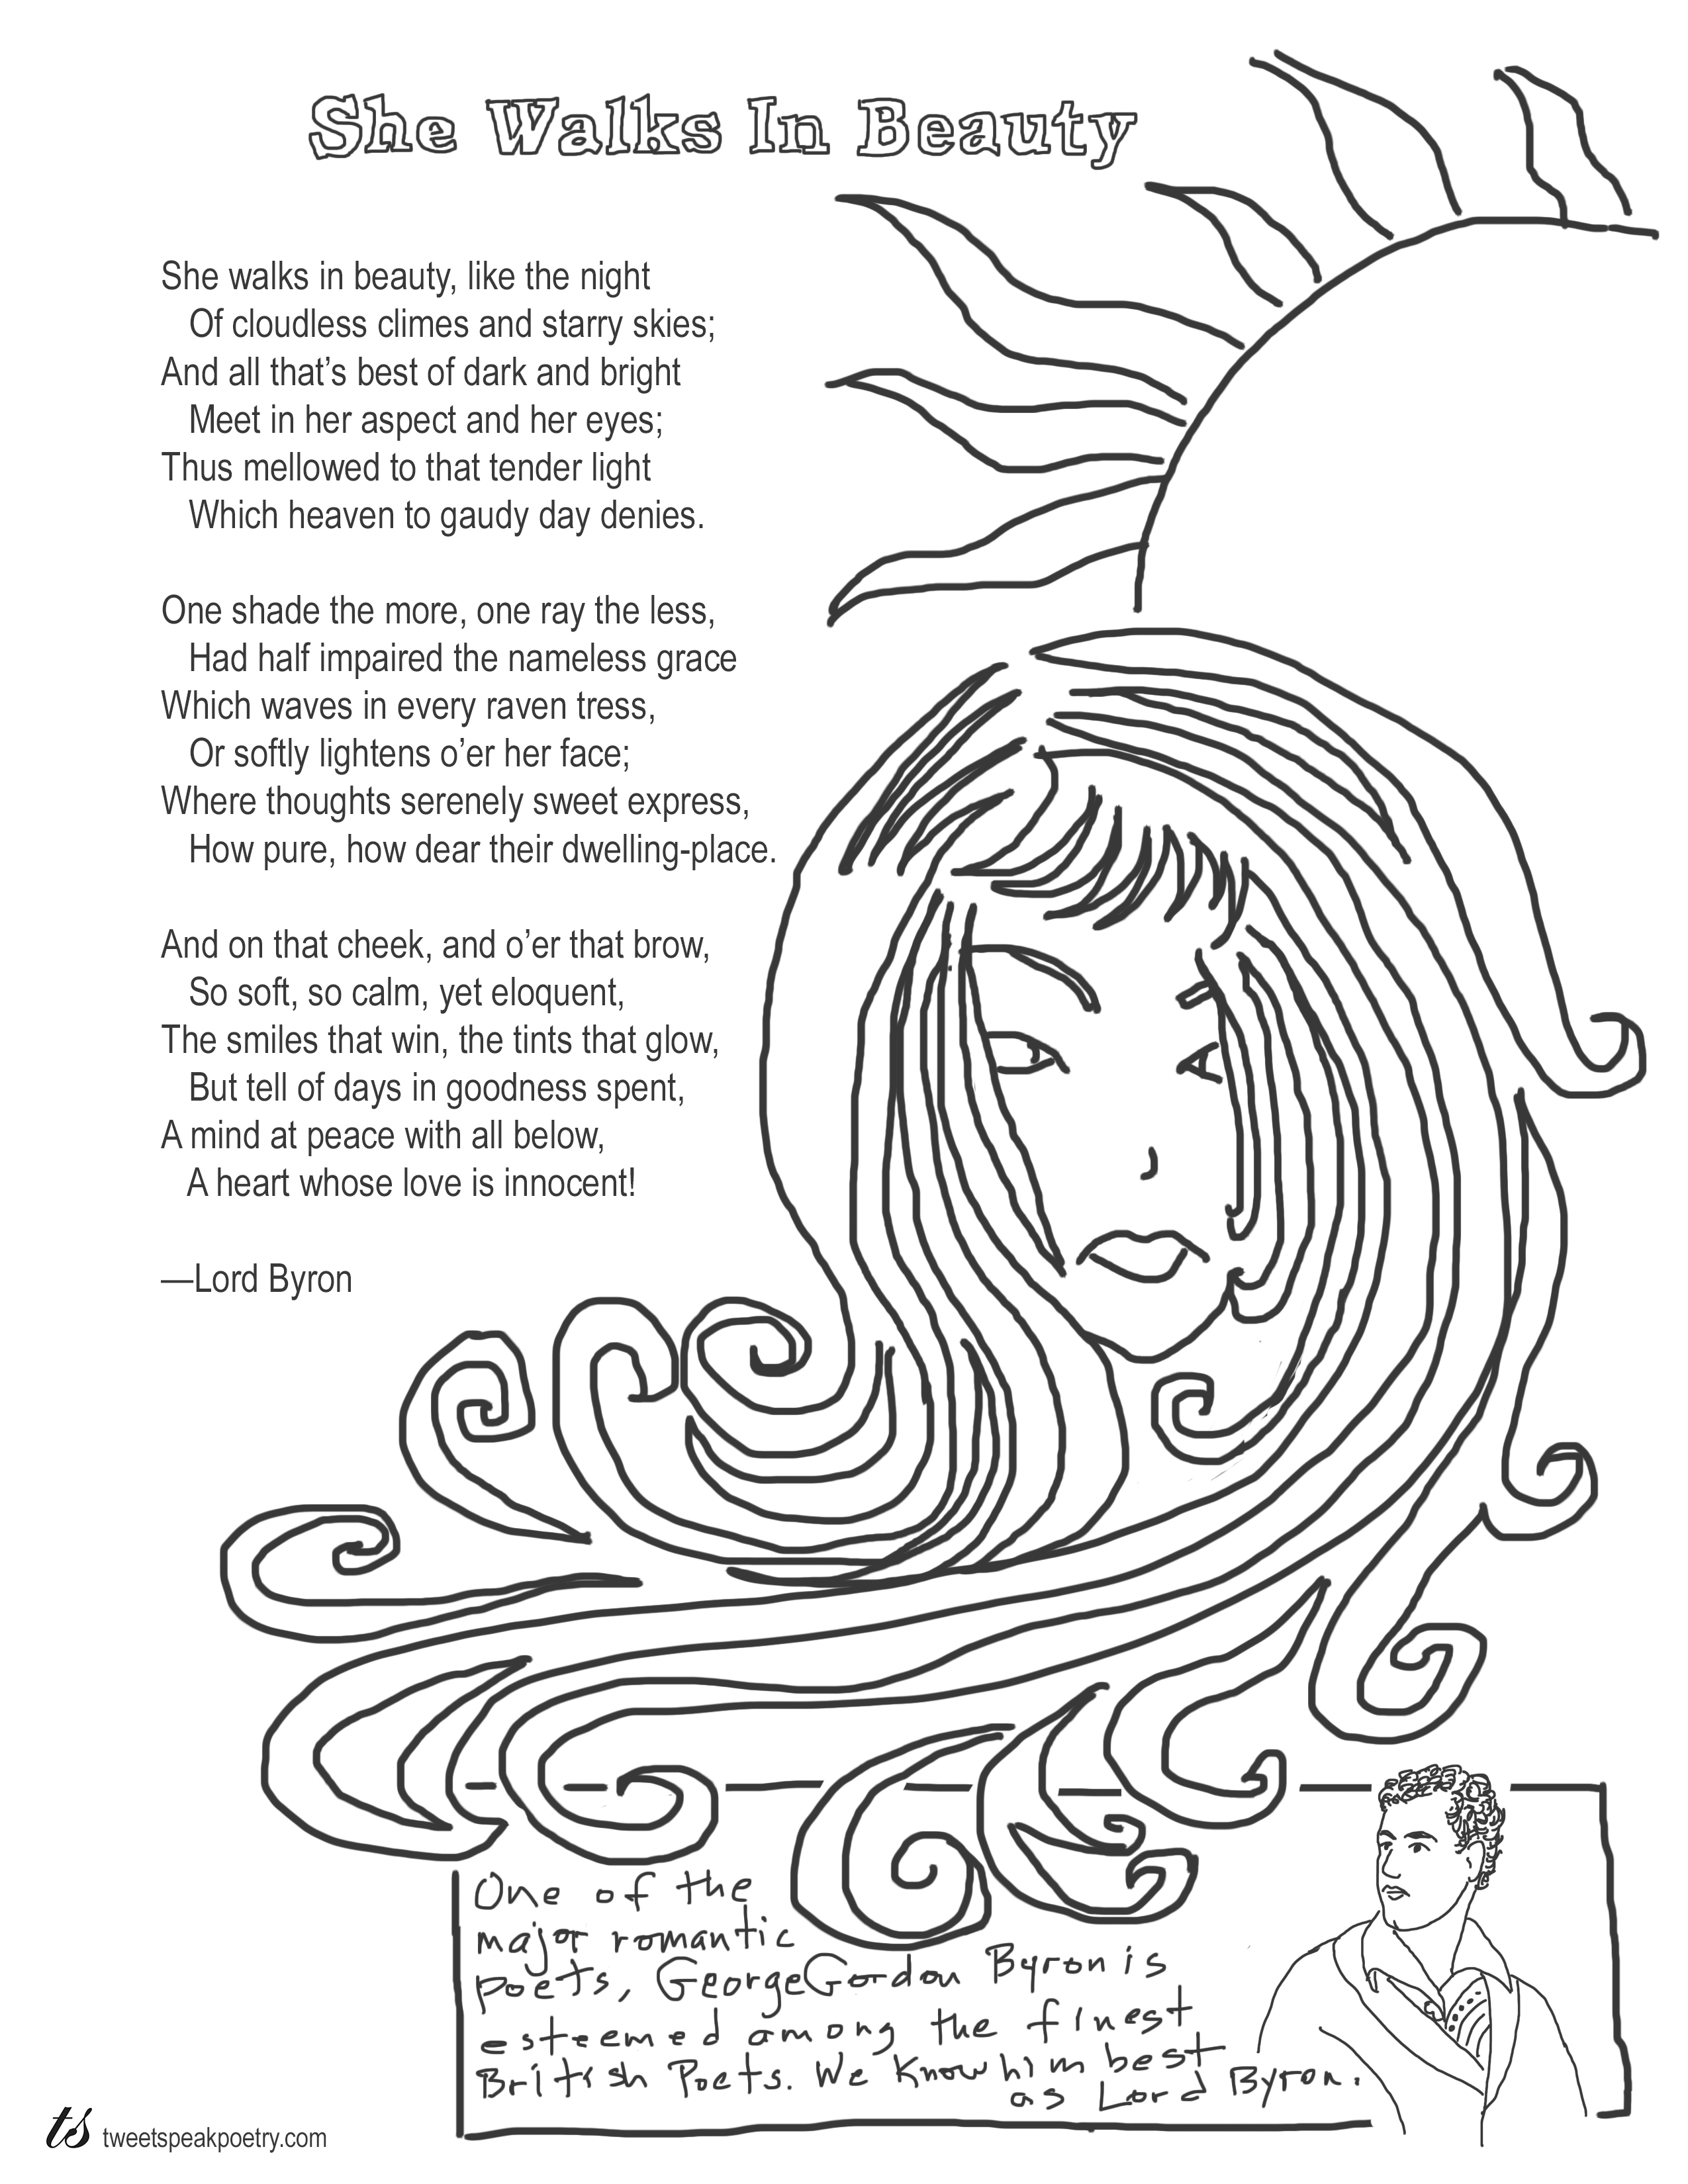 She Walks in Beauty by Lord Byron Coloring Page Poem